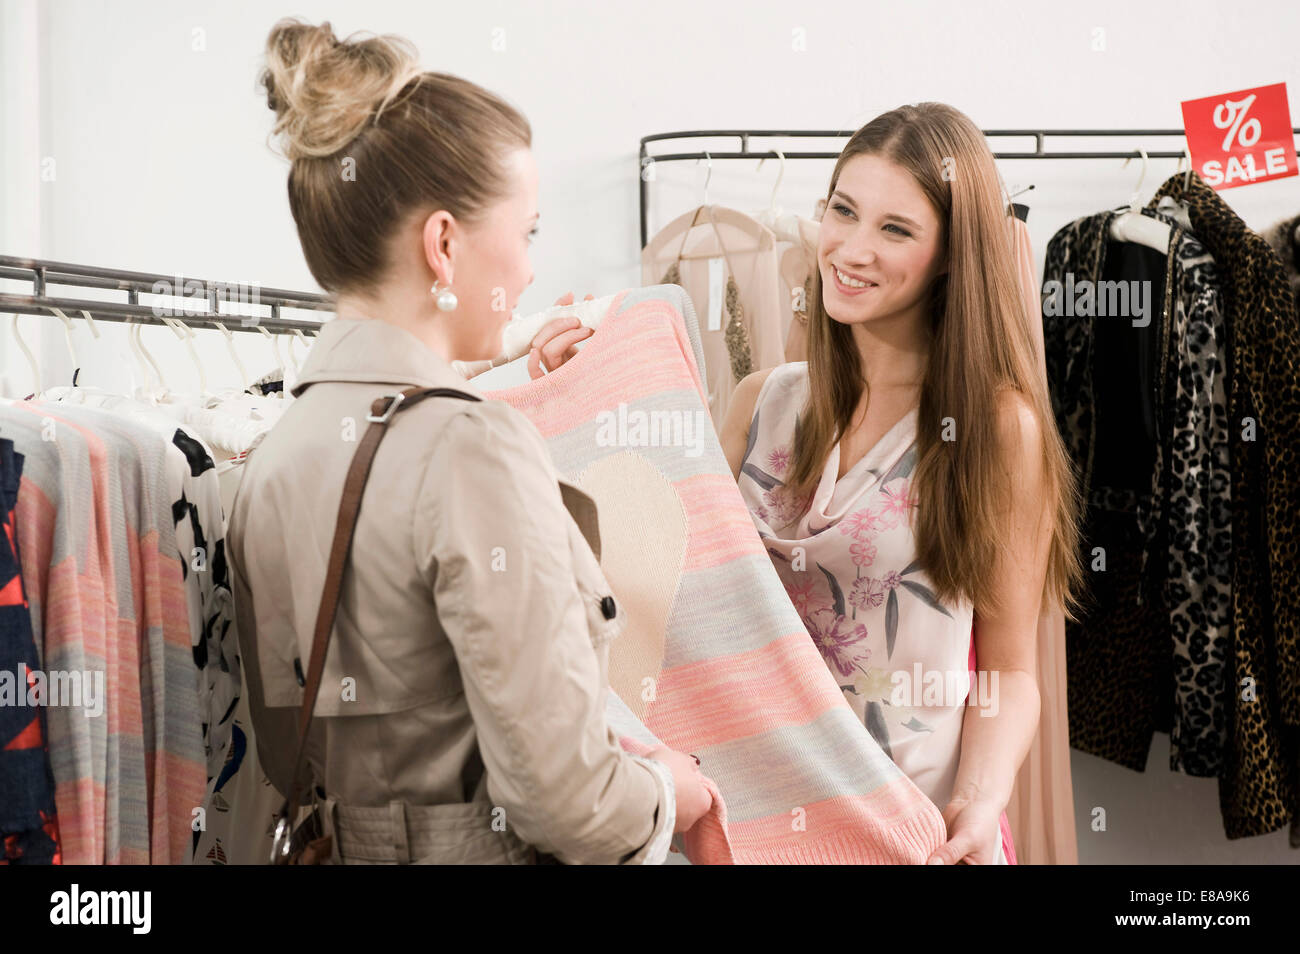 Sales girl with customer in fashion store - Stock Image